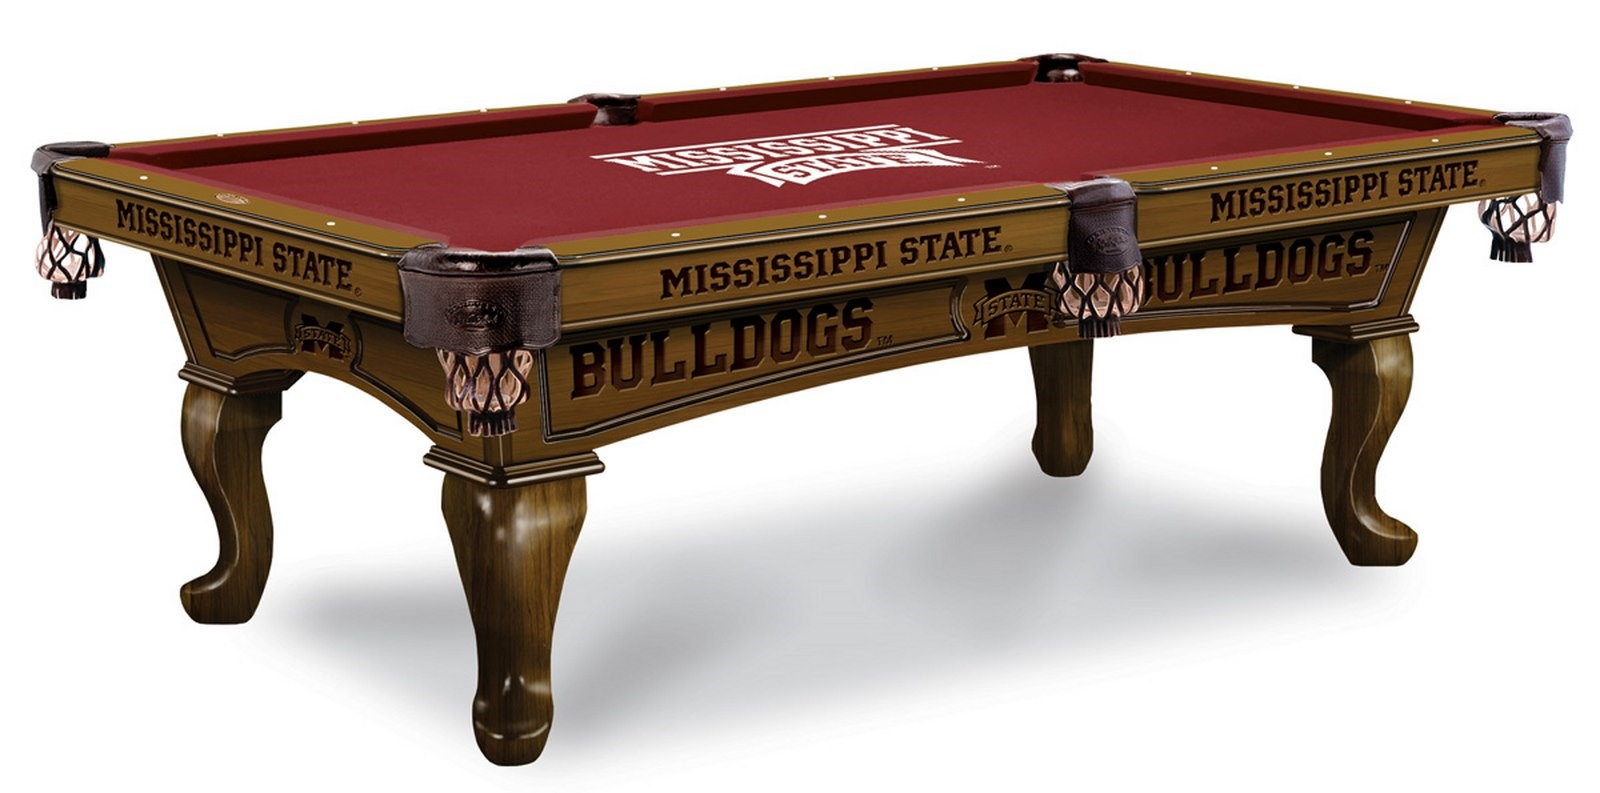 Mississippi State University Pool Table 100 made in USA  : Mississippi State University Pool Table from www.diamondbackbilliards.com size 1600 x 793 jpeg 162kB